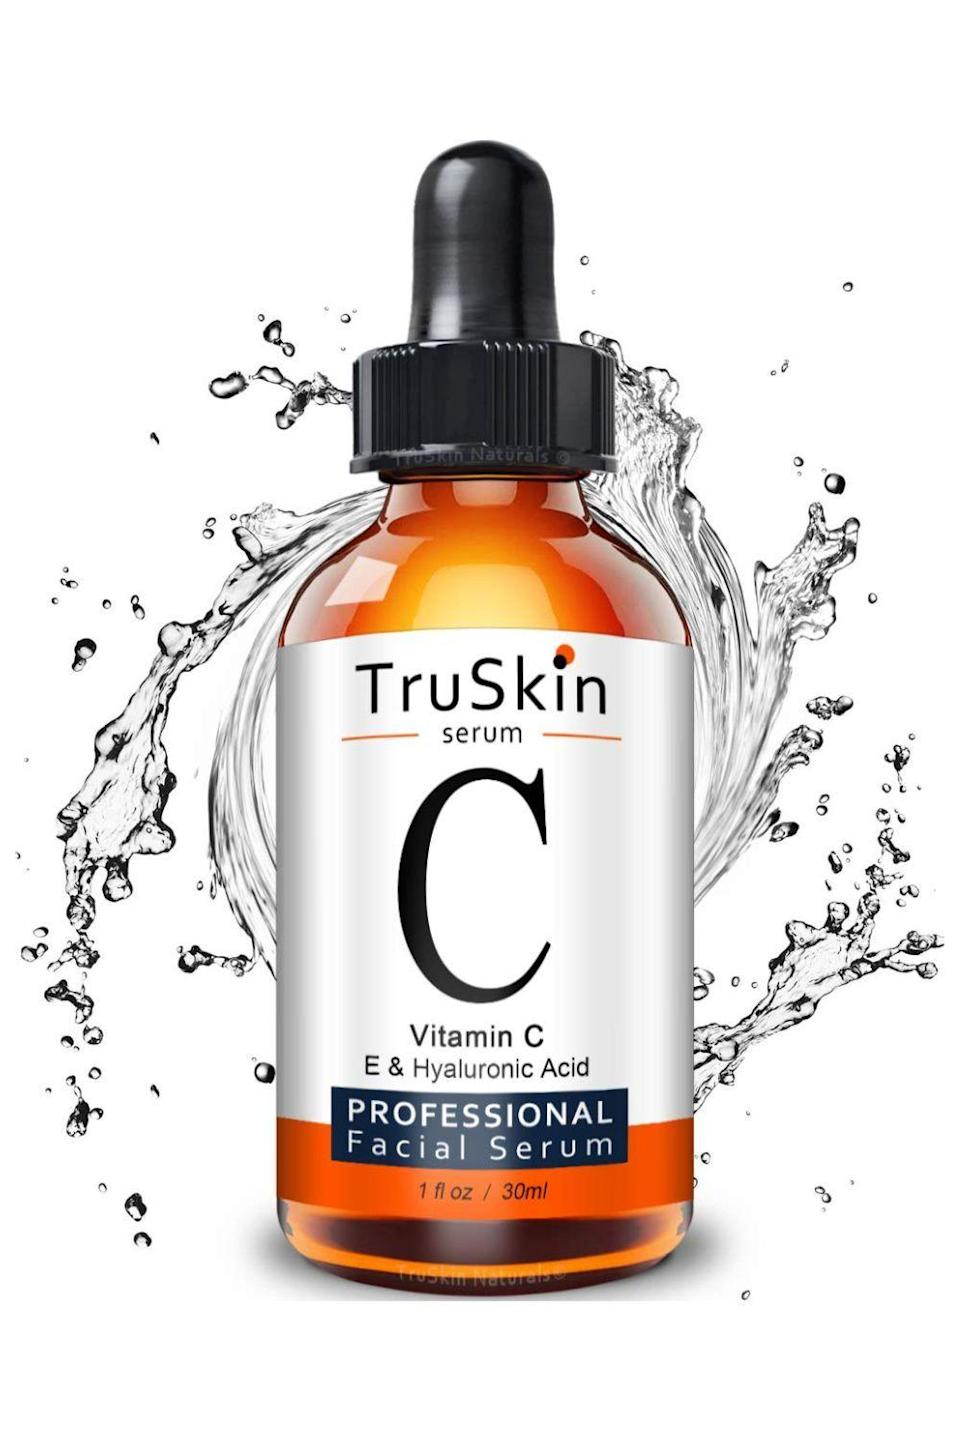 """<p><strong>TruSkin Naturals</strong></p><p>amazon.com</p><p><strong>$19.99</strong></p><p><a href=""""https://www.amazon.com/dp/B01M4MCUAF?tag=syn-yahoo-20&ascsubtag=%5Bartid%7C10049.g.33904719%5Bsrc%7Cyahoo-us"""" rel=""""nofollow noopener"""" target=""""_blank"""" data-ylk=""""slk:shop"""" class=""""link rapid-noclick-resp"""">shop</a></p><p>With all the antioxidant and skin-brightening benefits of a <a href=""""https://www.cosmopolitan.com/style-beauty/beauty/g12091058/best-vitamin-c-serum-face-skin/"""" rel=""""nofollow noopener"""" target=""""_blank"""" data-ylk=""""slk:vitamin C serum"""" class=""""link rapid-noclick-resp"""">vitamin C serum</a>, pretty much everyone could use one in their skincare routine. This inexpensive option, which uses the vitamin C derivative sodium ascorbyl phosphate, comes highly recommended by more than 28,000 Amazon reviewers.</p>"""